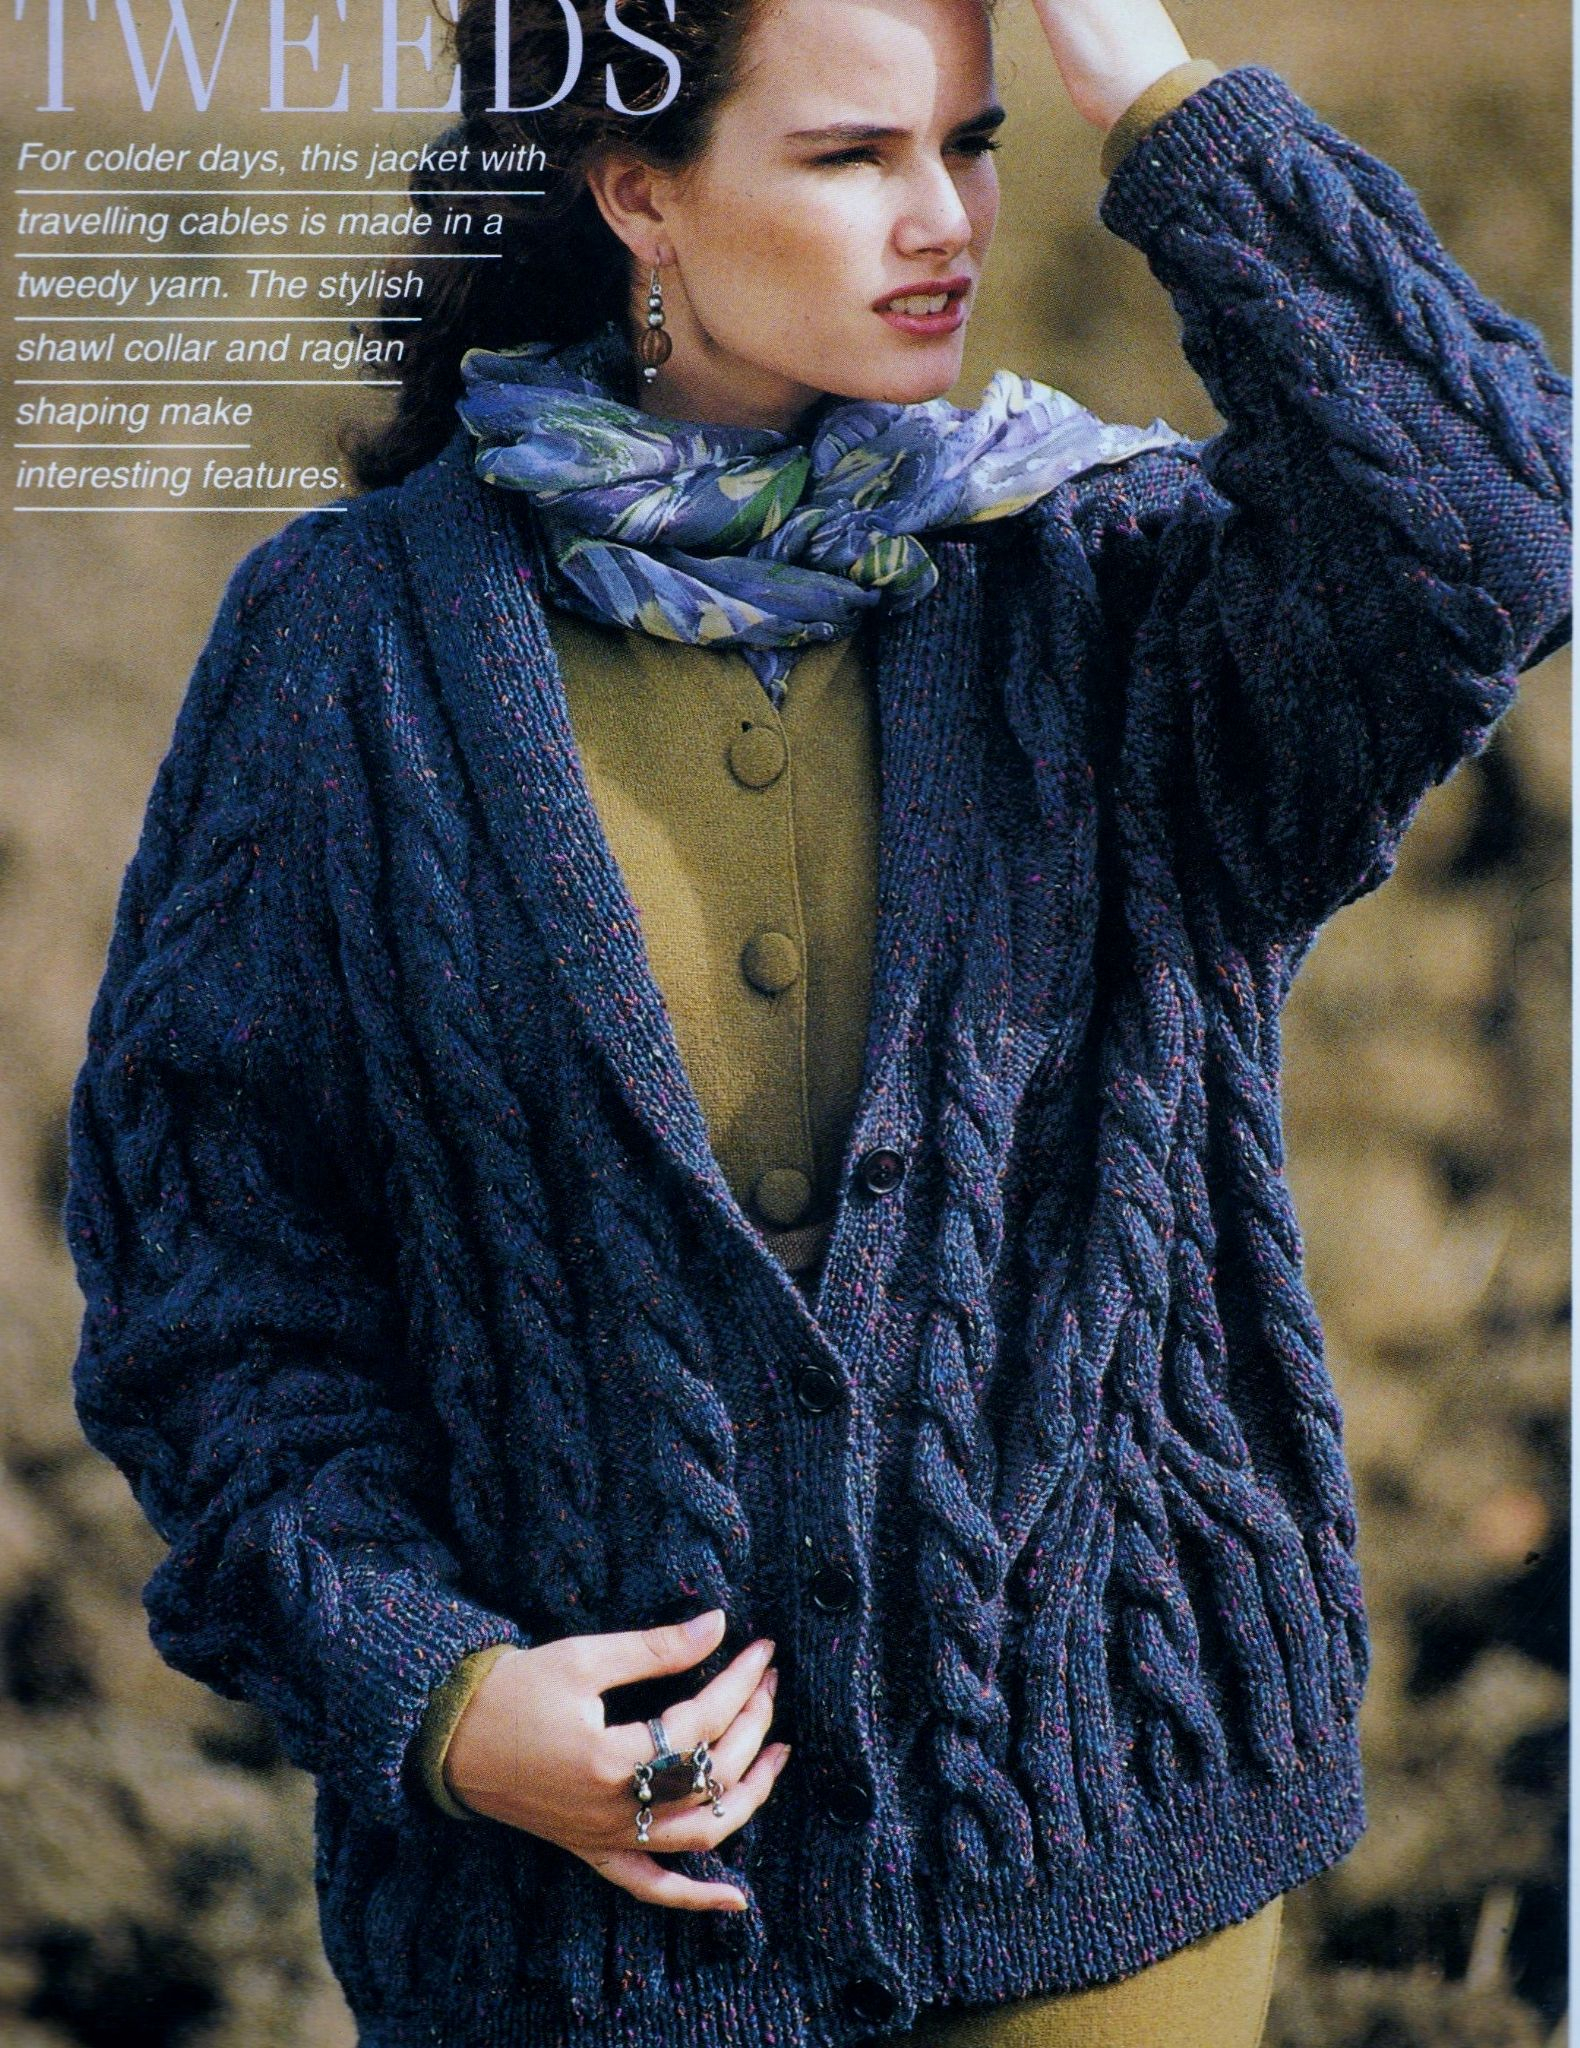 Knitted Jacket Patterns Pdf Digital Download Vintage Knitting Pattern To Make A Ladies Loose Fitting Travelling Cable Cardigan Jacket With Shawl Collar In Dk